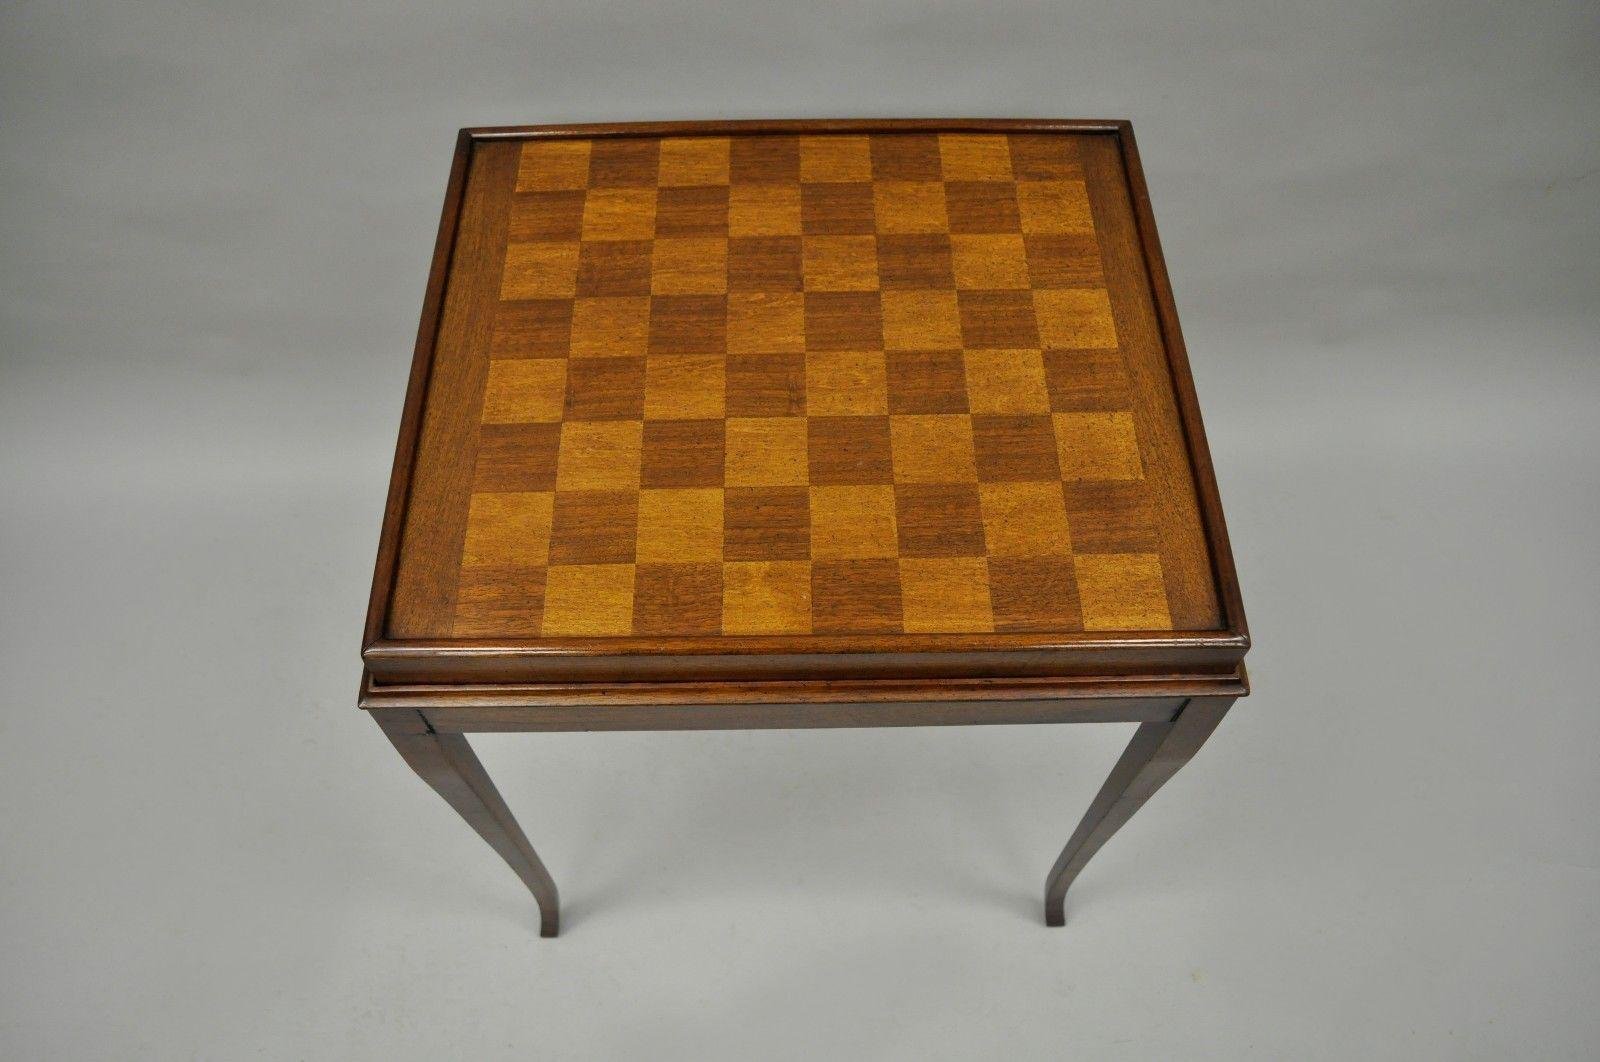 Brandt Inlaid Chess Checkers Game Table Brass Flip Lift Out Tray Mahogany  Wood   Image 3